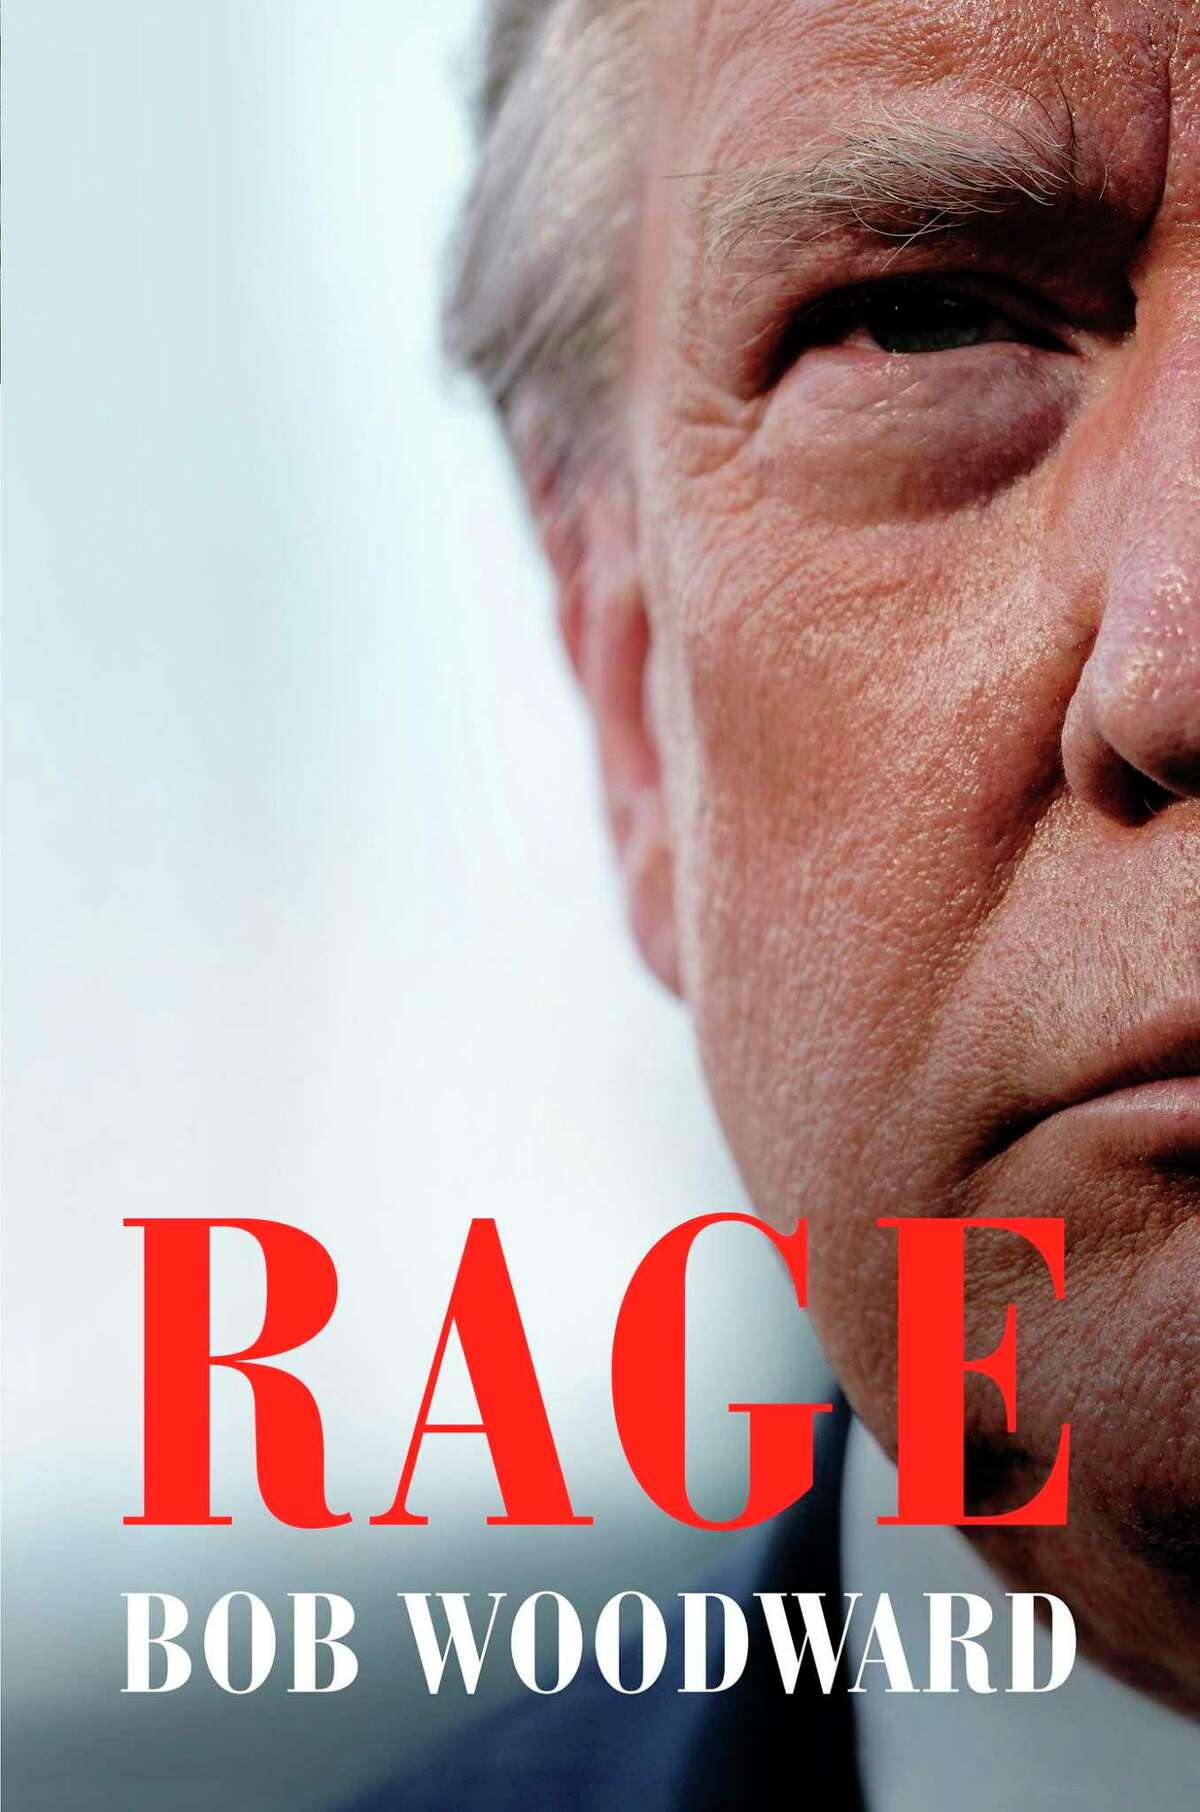 """In """"Rage,"""" Bob Woodward's latest book, President Donald Trump says he played down the threat of COVID-19. A reader says Trump had an obligation to be straight with the public."""